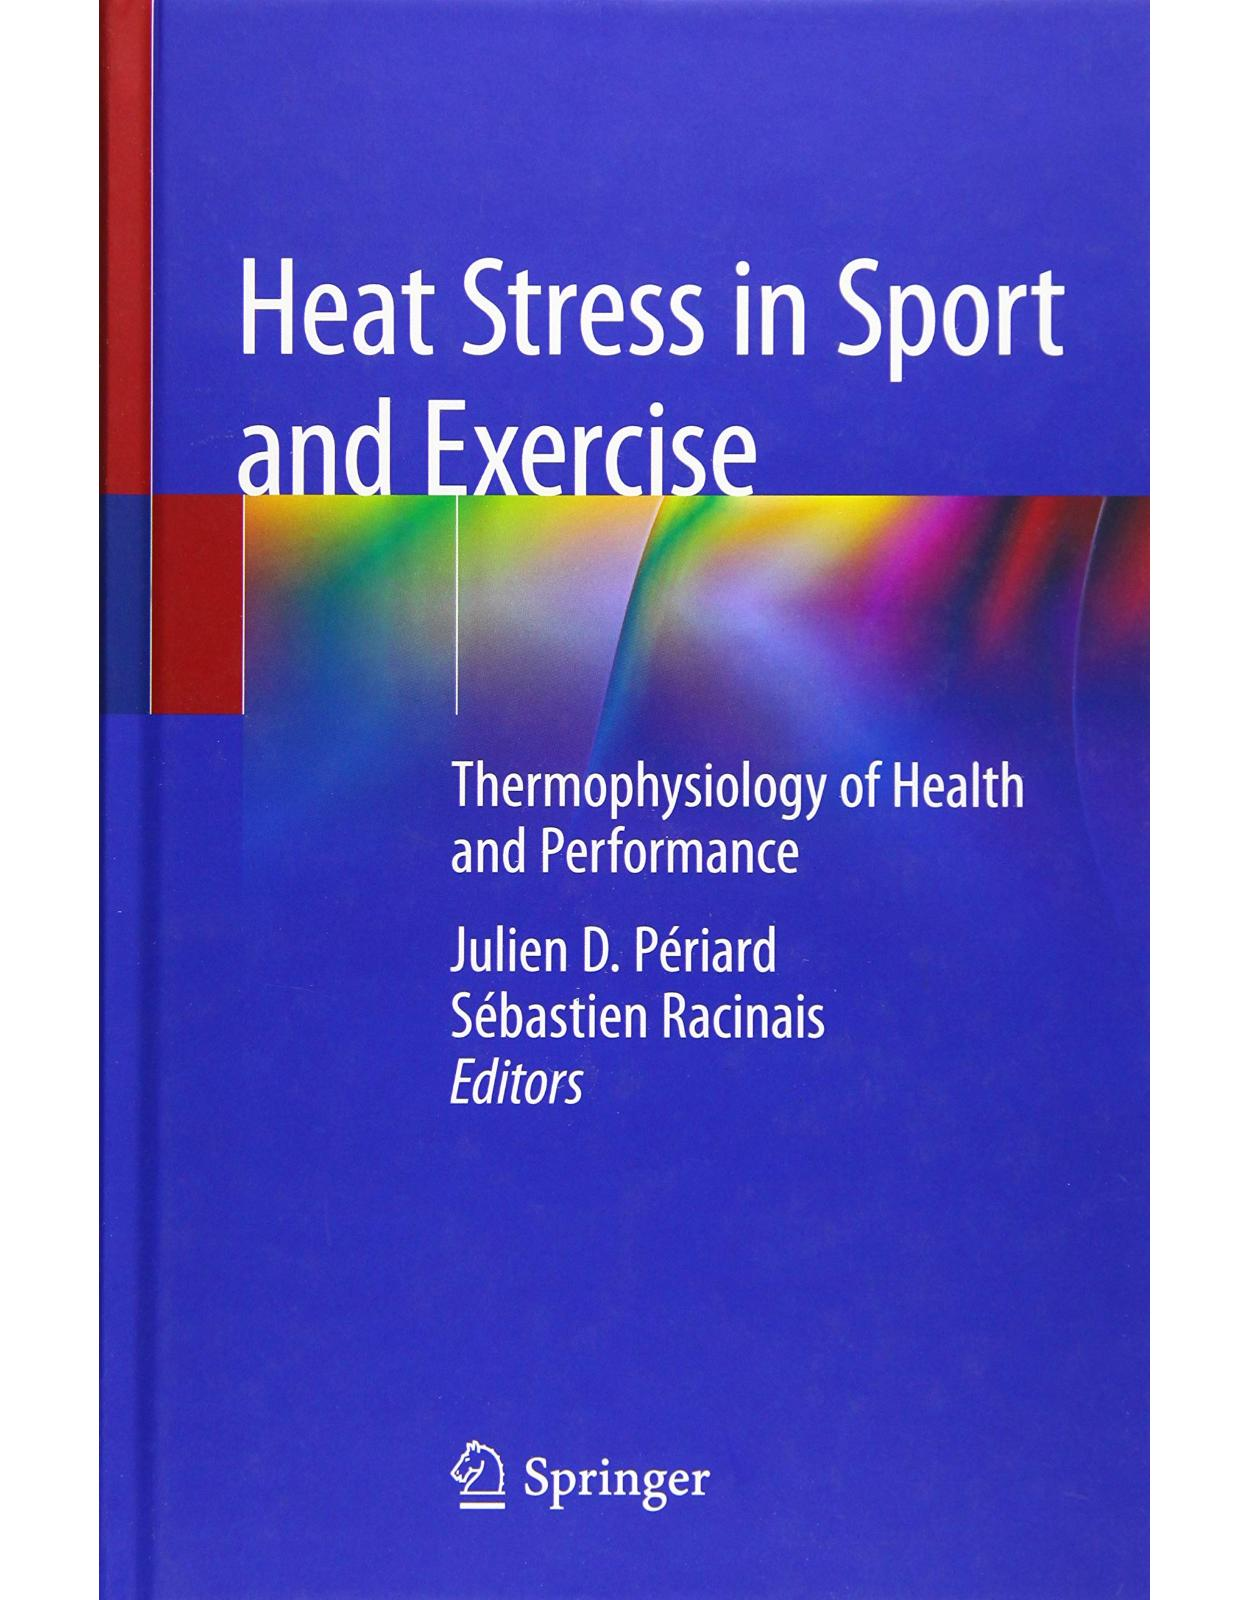 Heat Stress in Sport and Exercise. Thermophysiology of Health and Performance